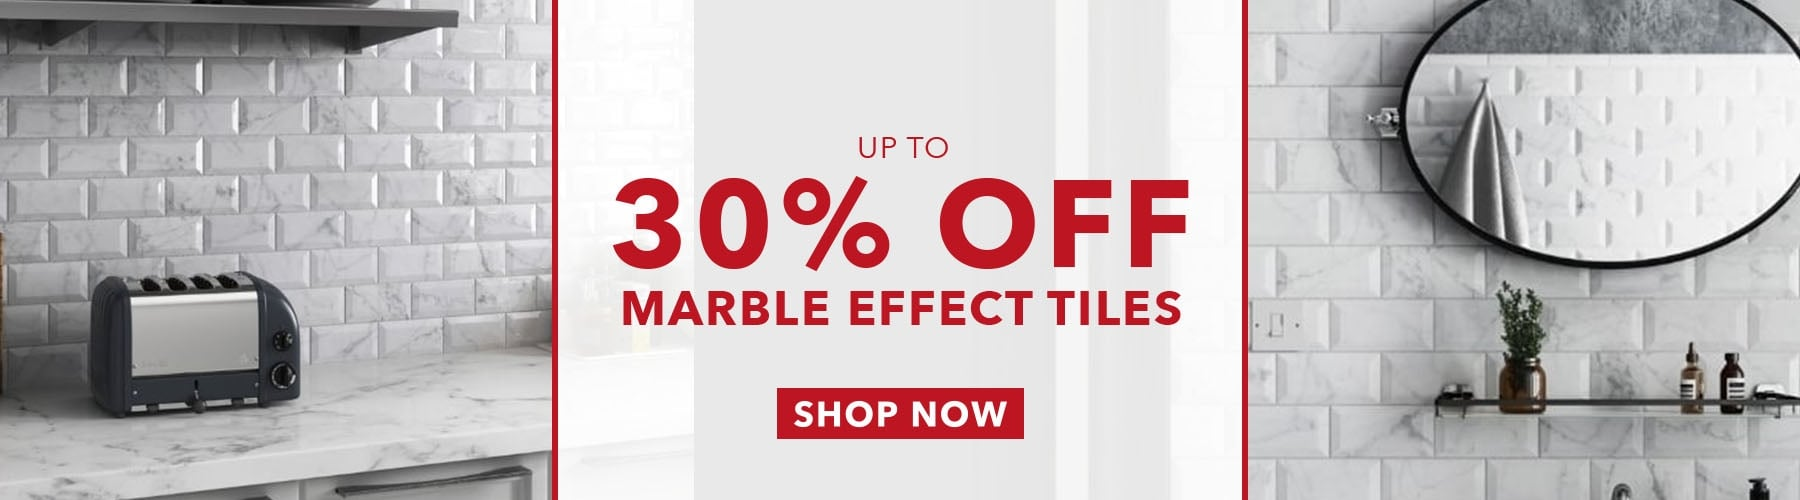 Marble Effect Banner